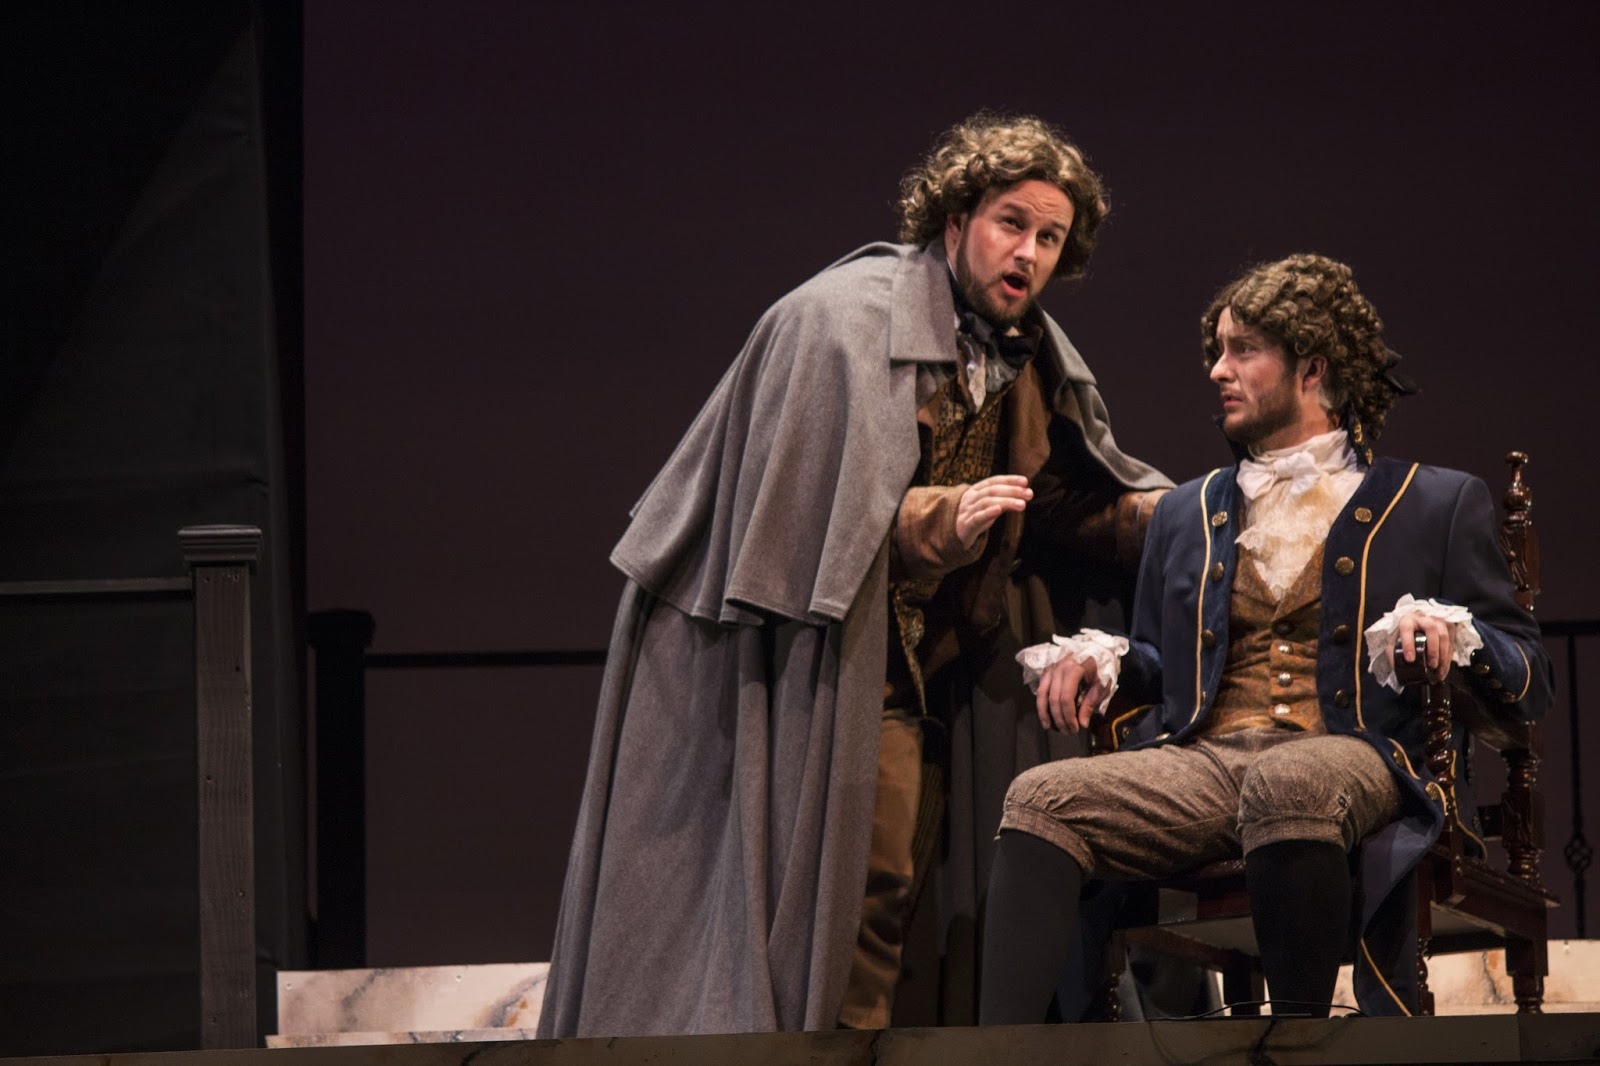 IN PERFORMANCE: Tenor DEREK JACKENHEIMER as the Chevalier de la Force (left) and baritone JAMES V. SCARANTINO as the Marquis de la Force (right; performing on 8 April) in UNCG Opera Theatre's production of Francis Poulenc's DIALOGUES OF THE CARMELITES, April 2016 [Photo by Rachel Anthony, © by rayphotographyco.com]